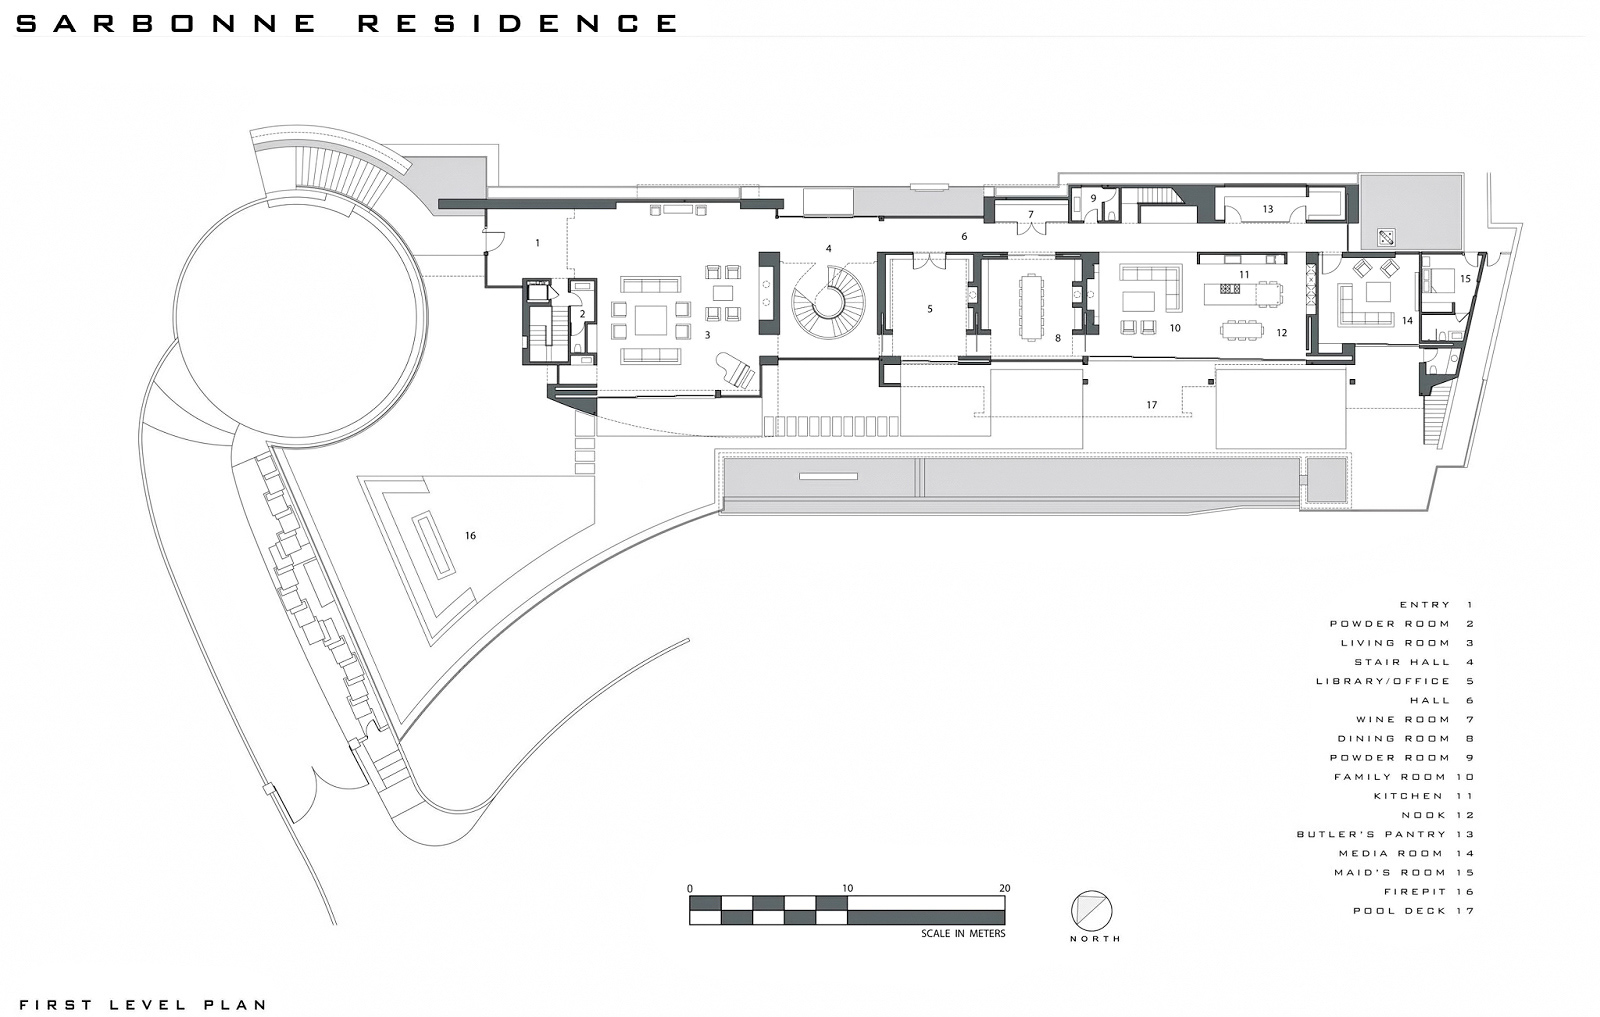 First Level Floor Plan – Bel Air Residence – 755 Sarbonne Rd, Los Angeles, CA, USA